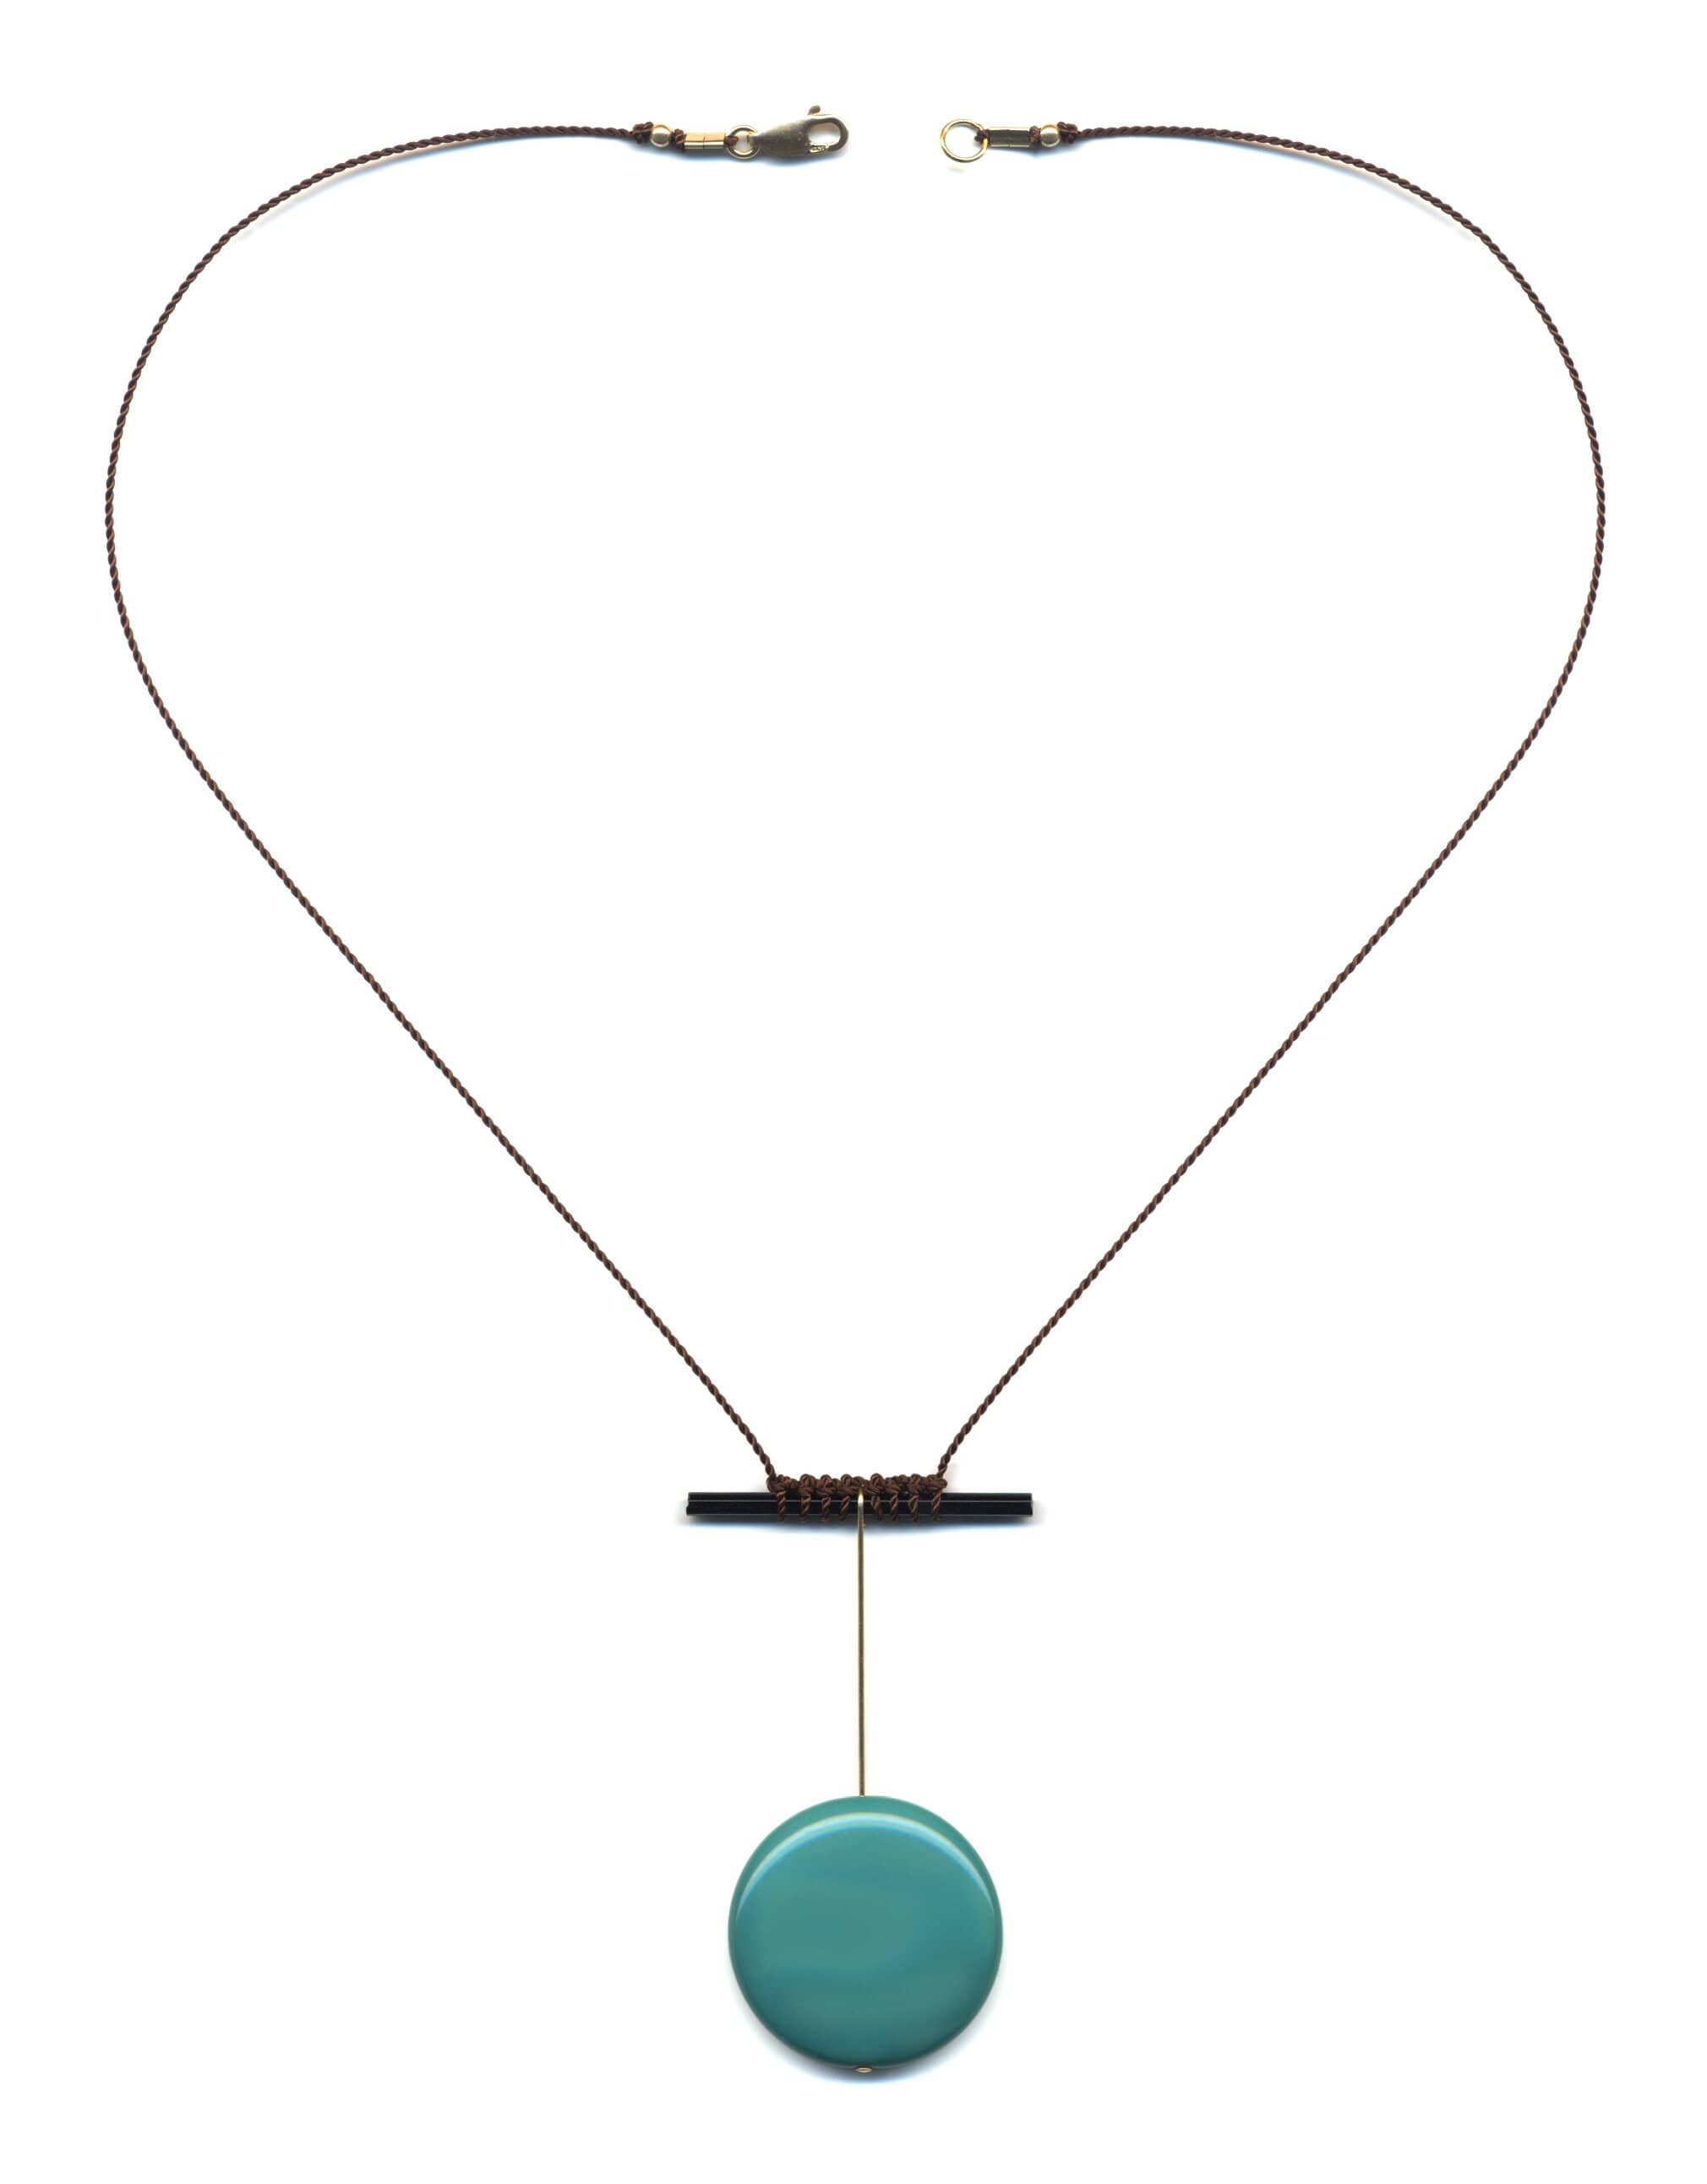 N1886 Teal Pendulum Necklace